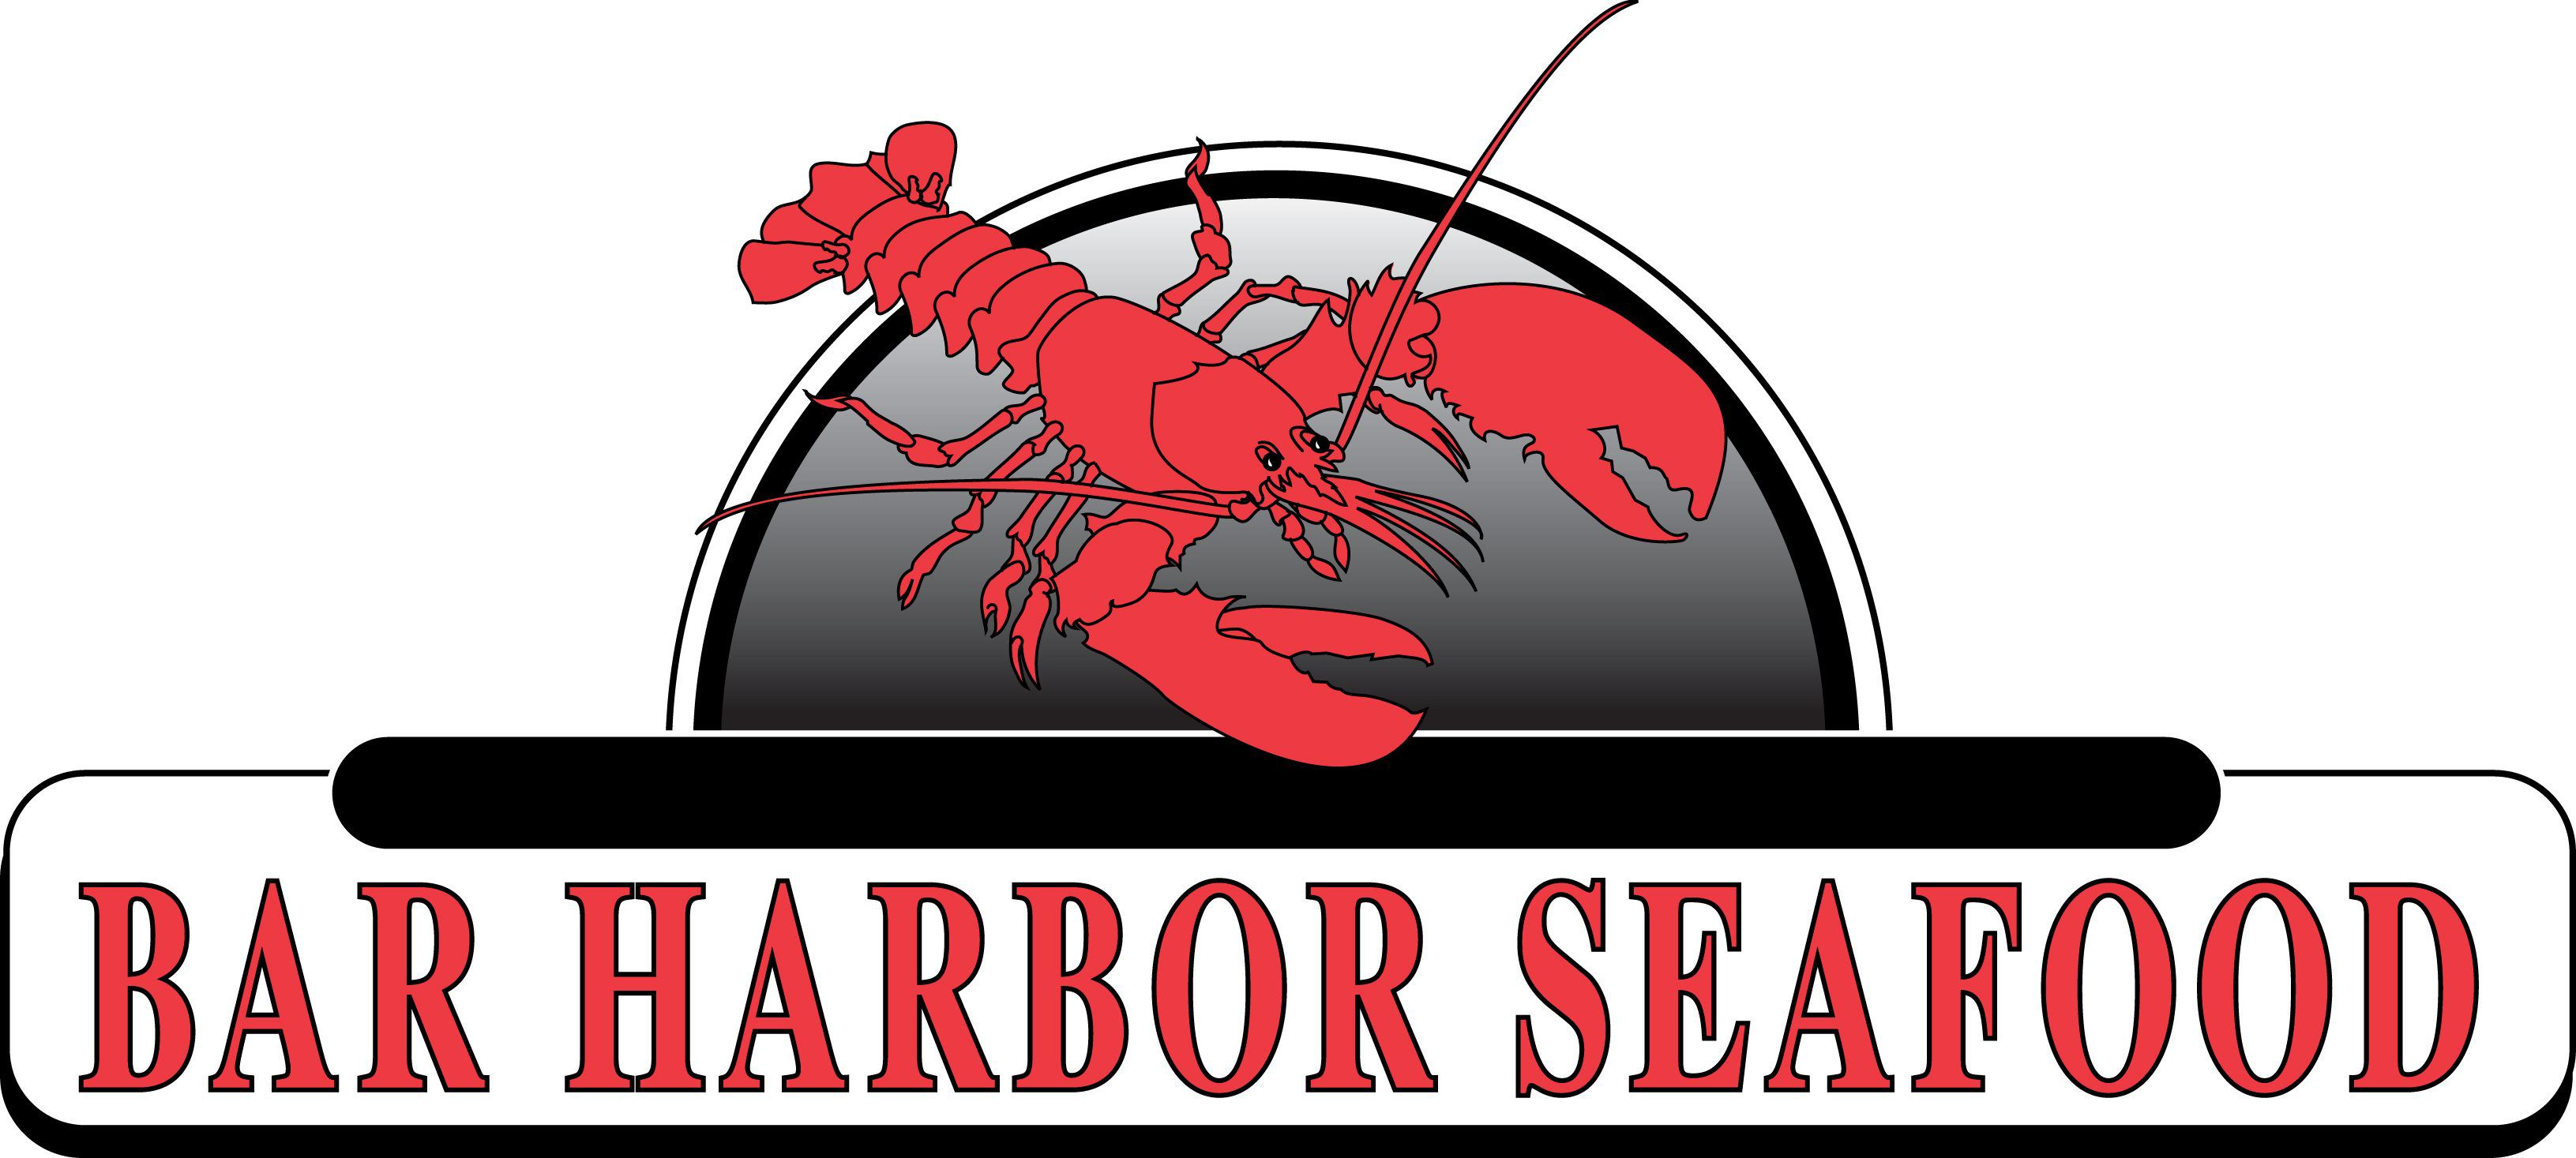 Seafood Distributor In Central Florida - Bar Harbor Seafood